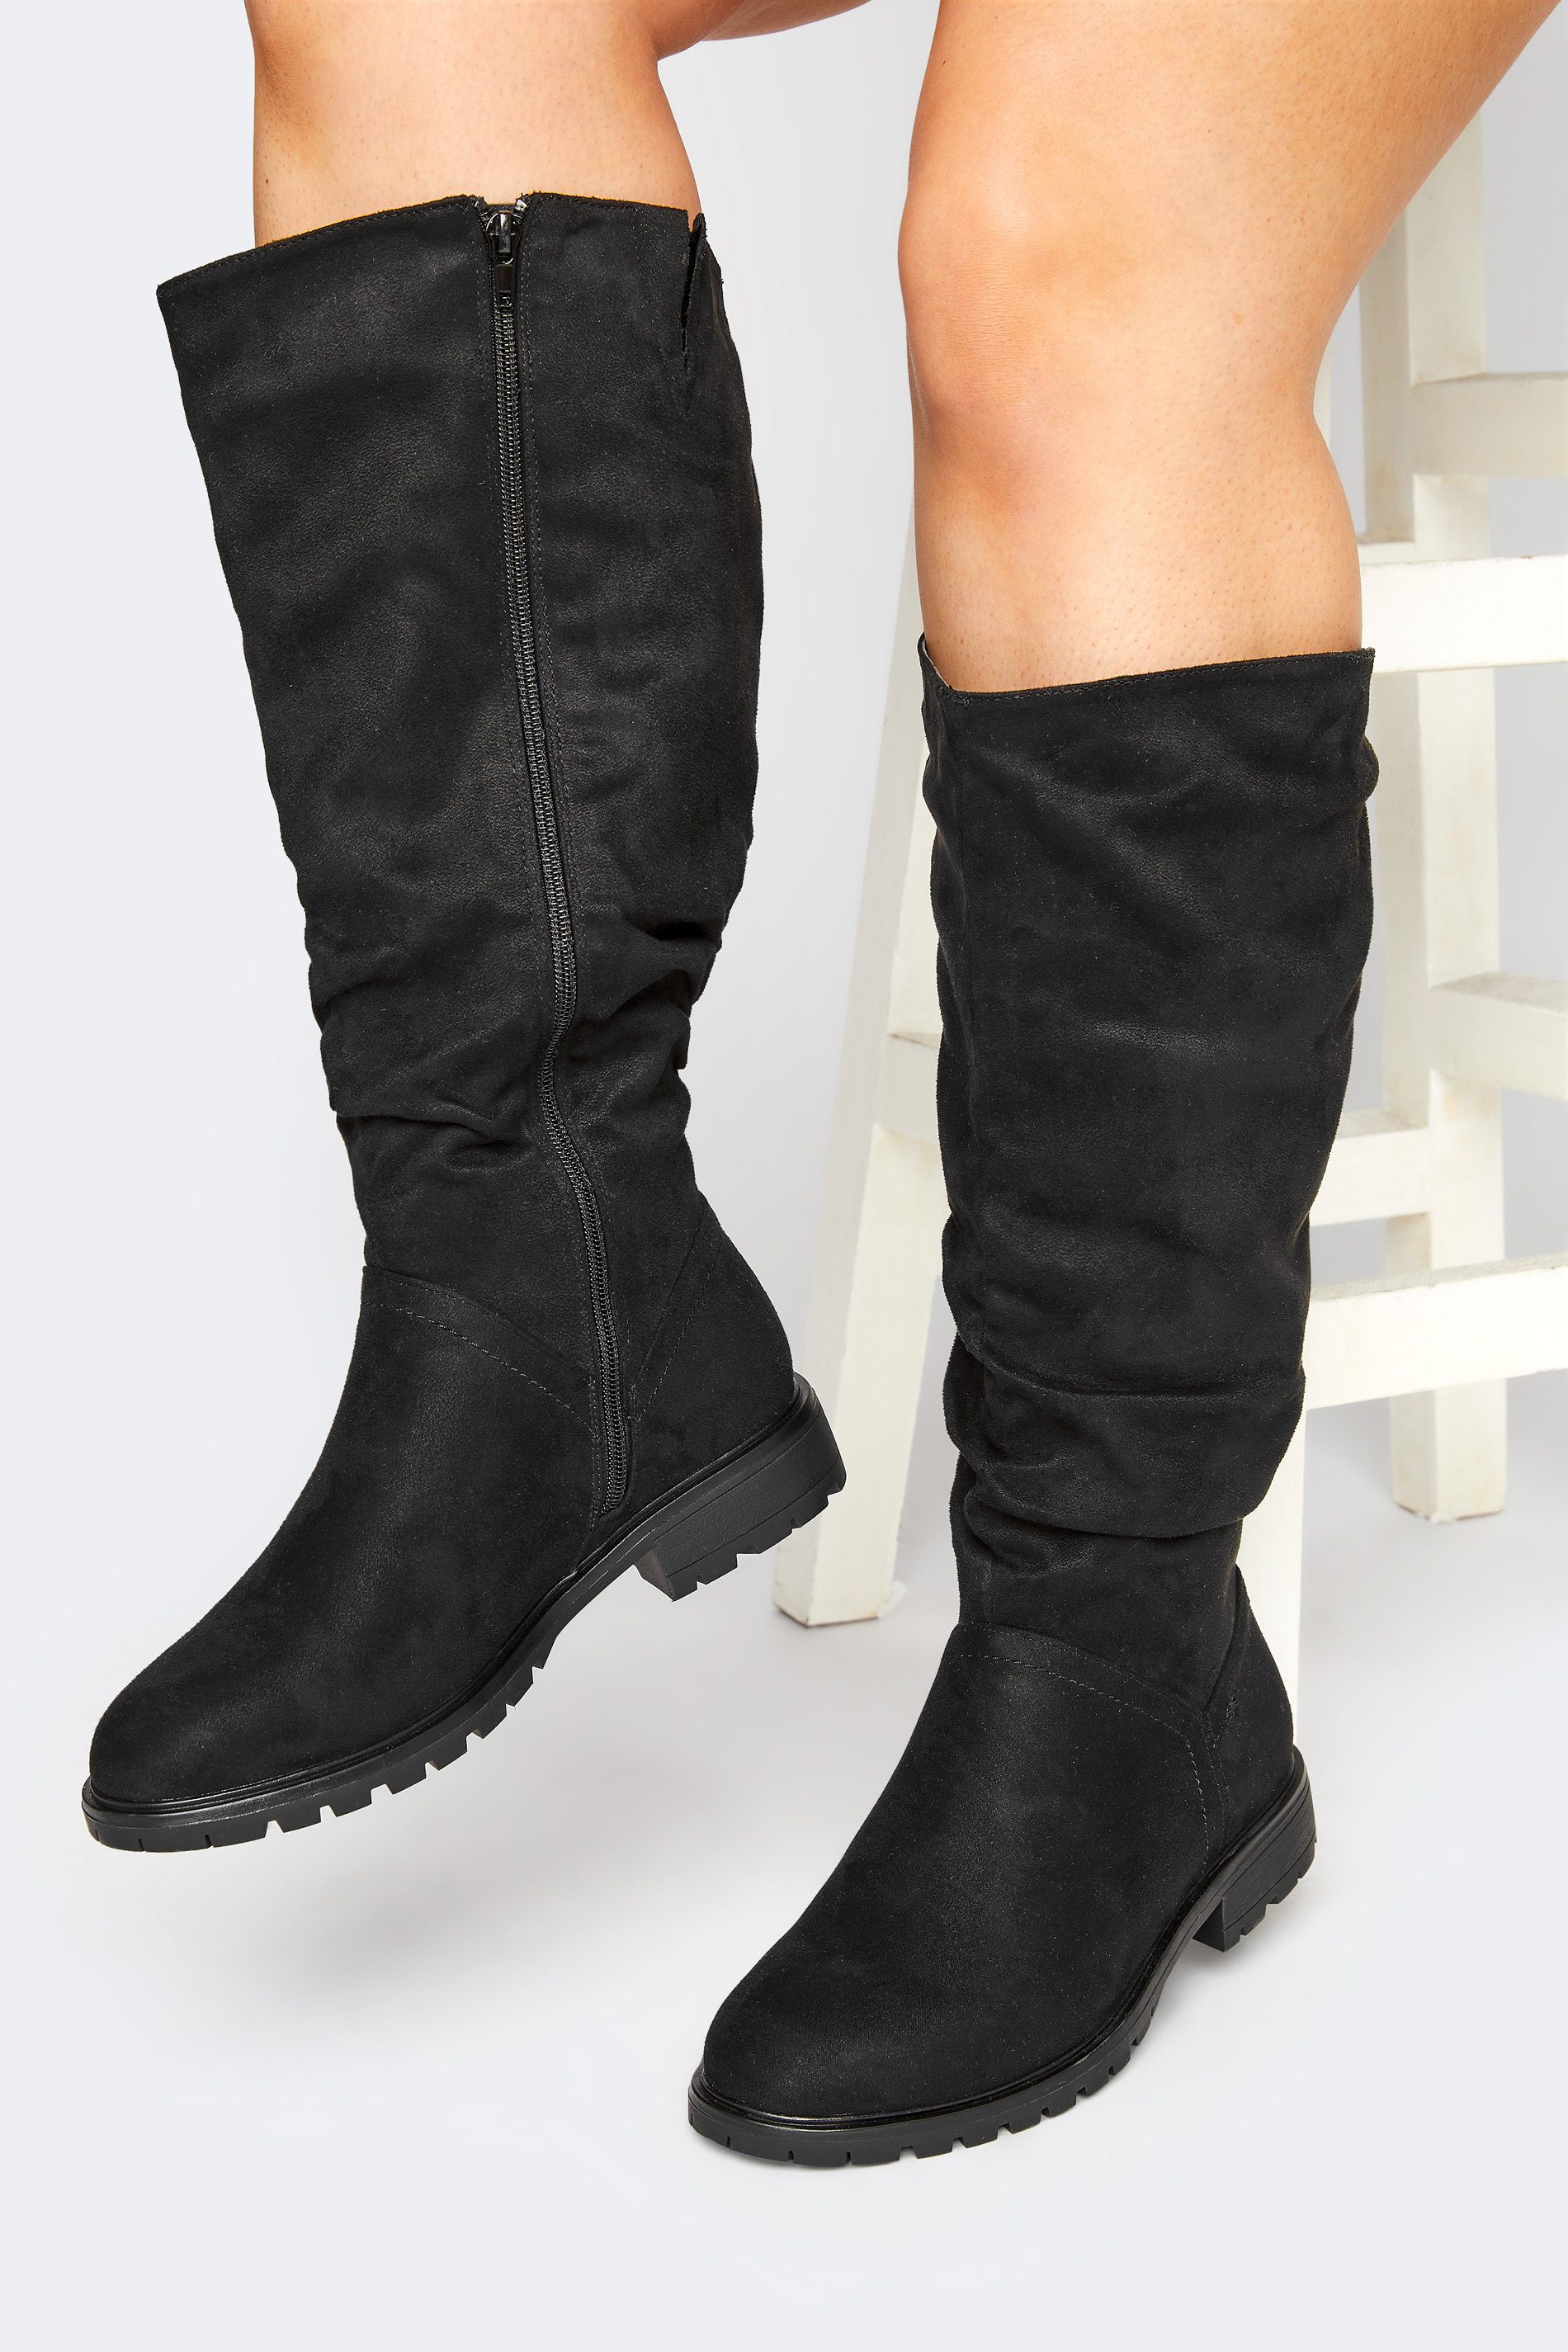 Black Ruched Cleated Boots In Regular Fit_M.jpg